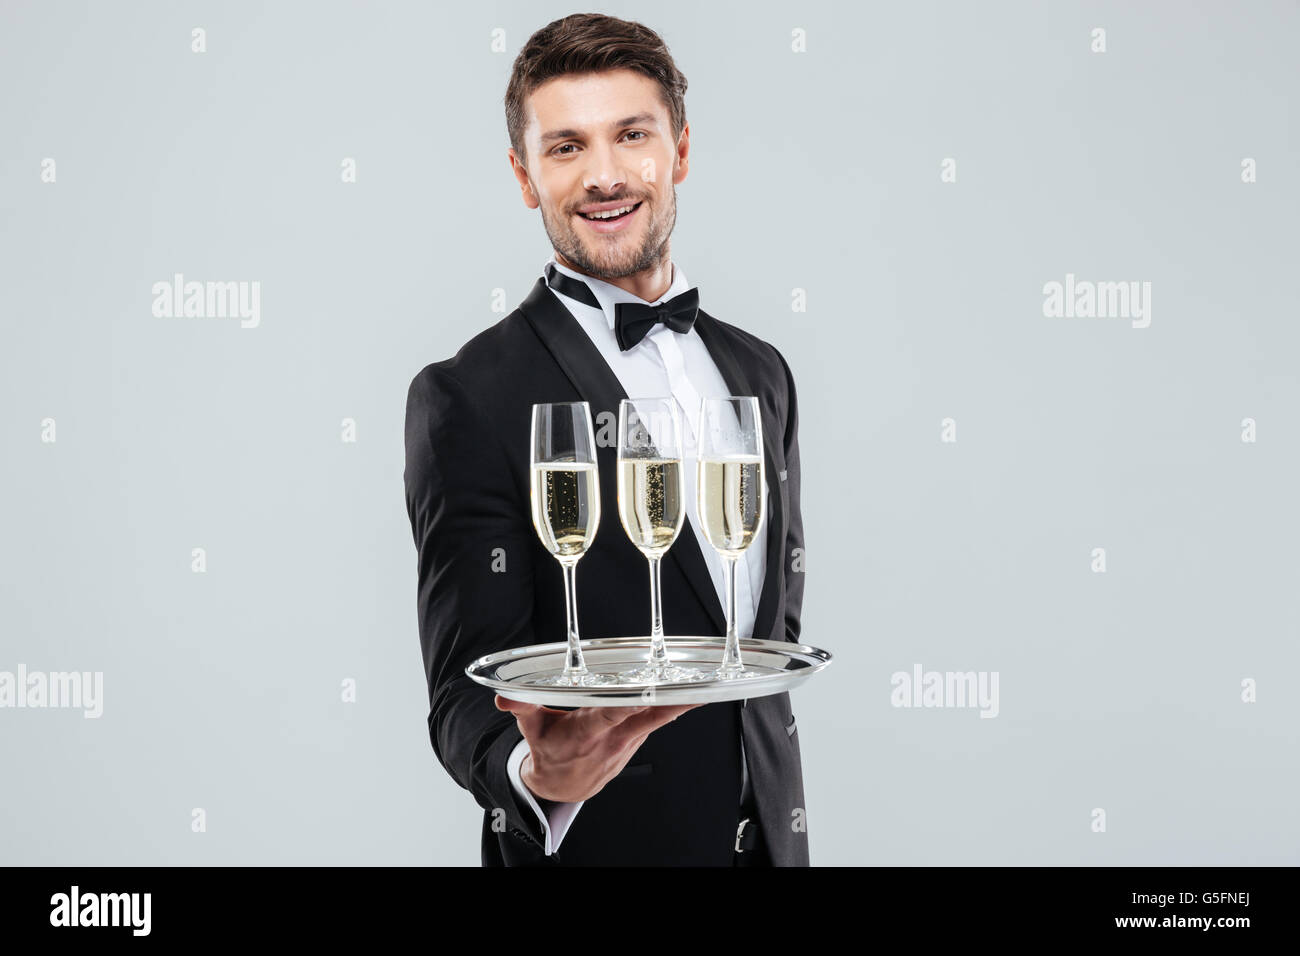 Cheerful young butler in tuxedo smiling and offering champagne - Stock Image